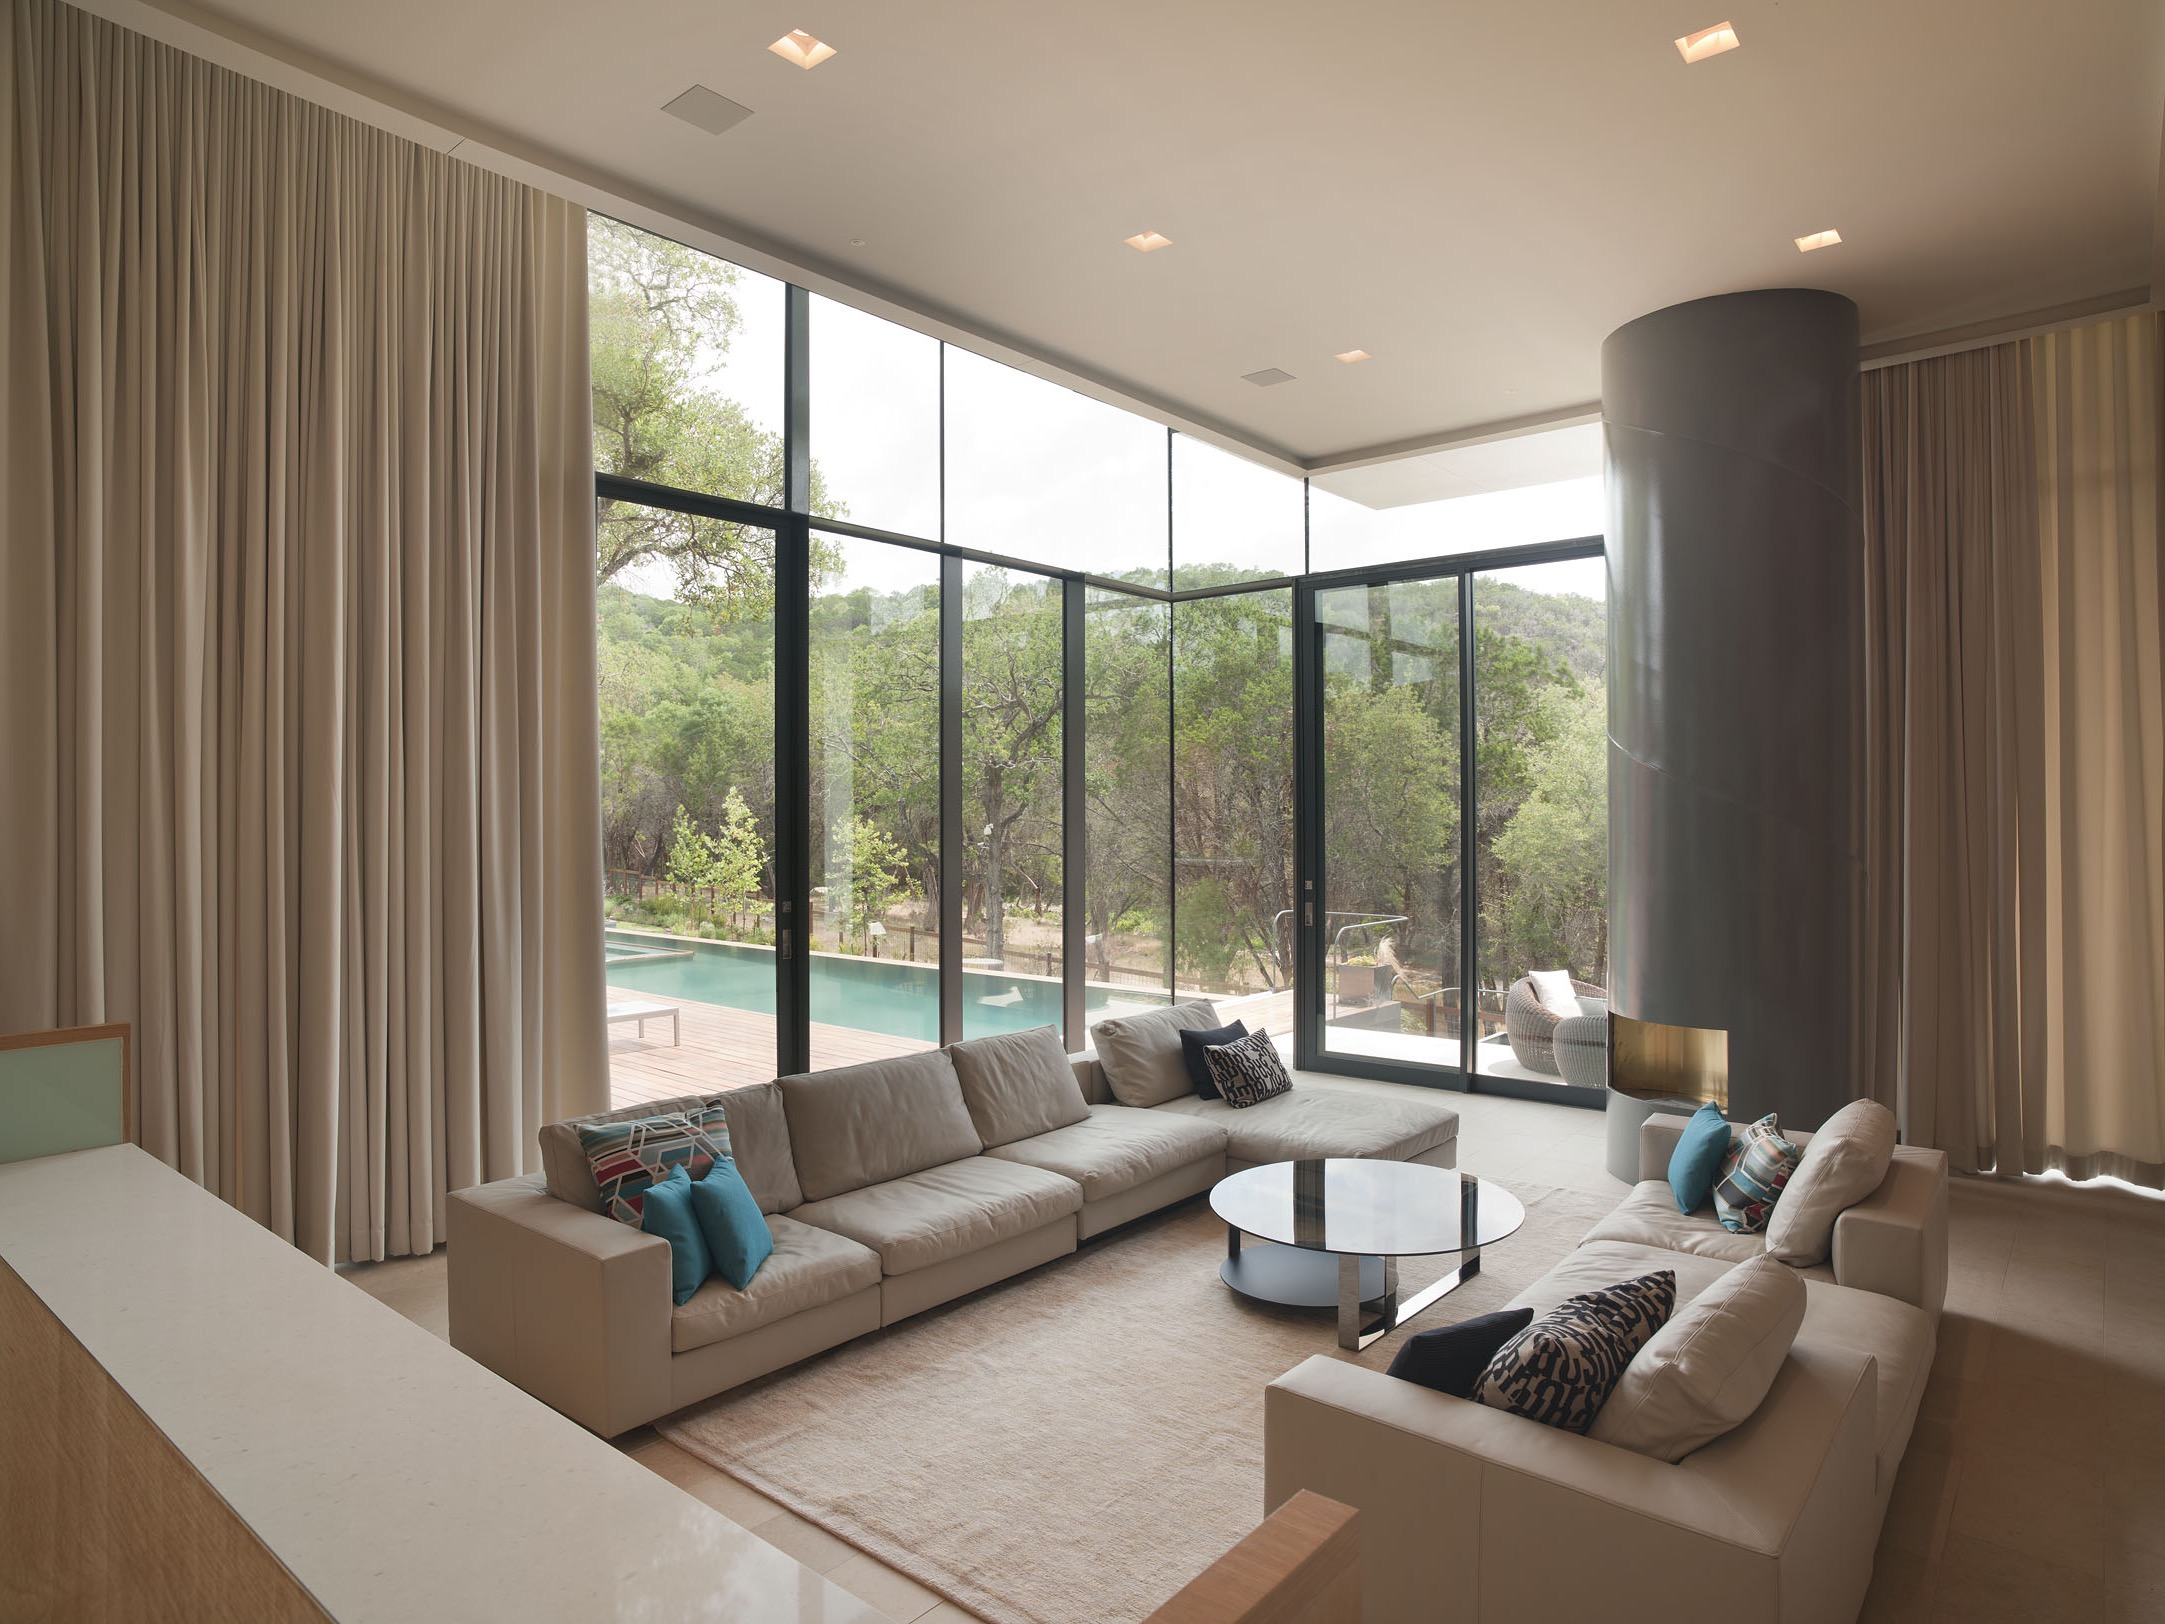 Floor Length Curtains And Glass Walls For Luxury Modern Living Room  (Image 14 of 25)